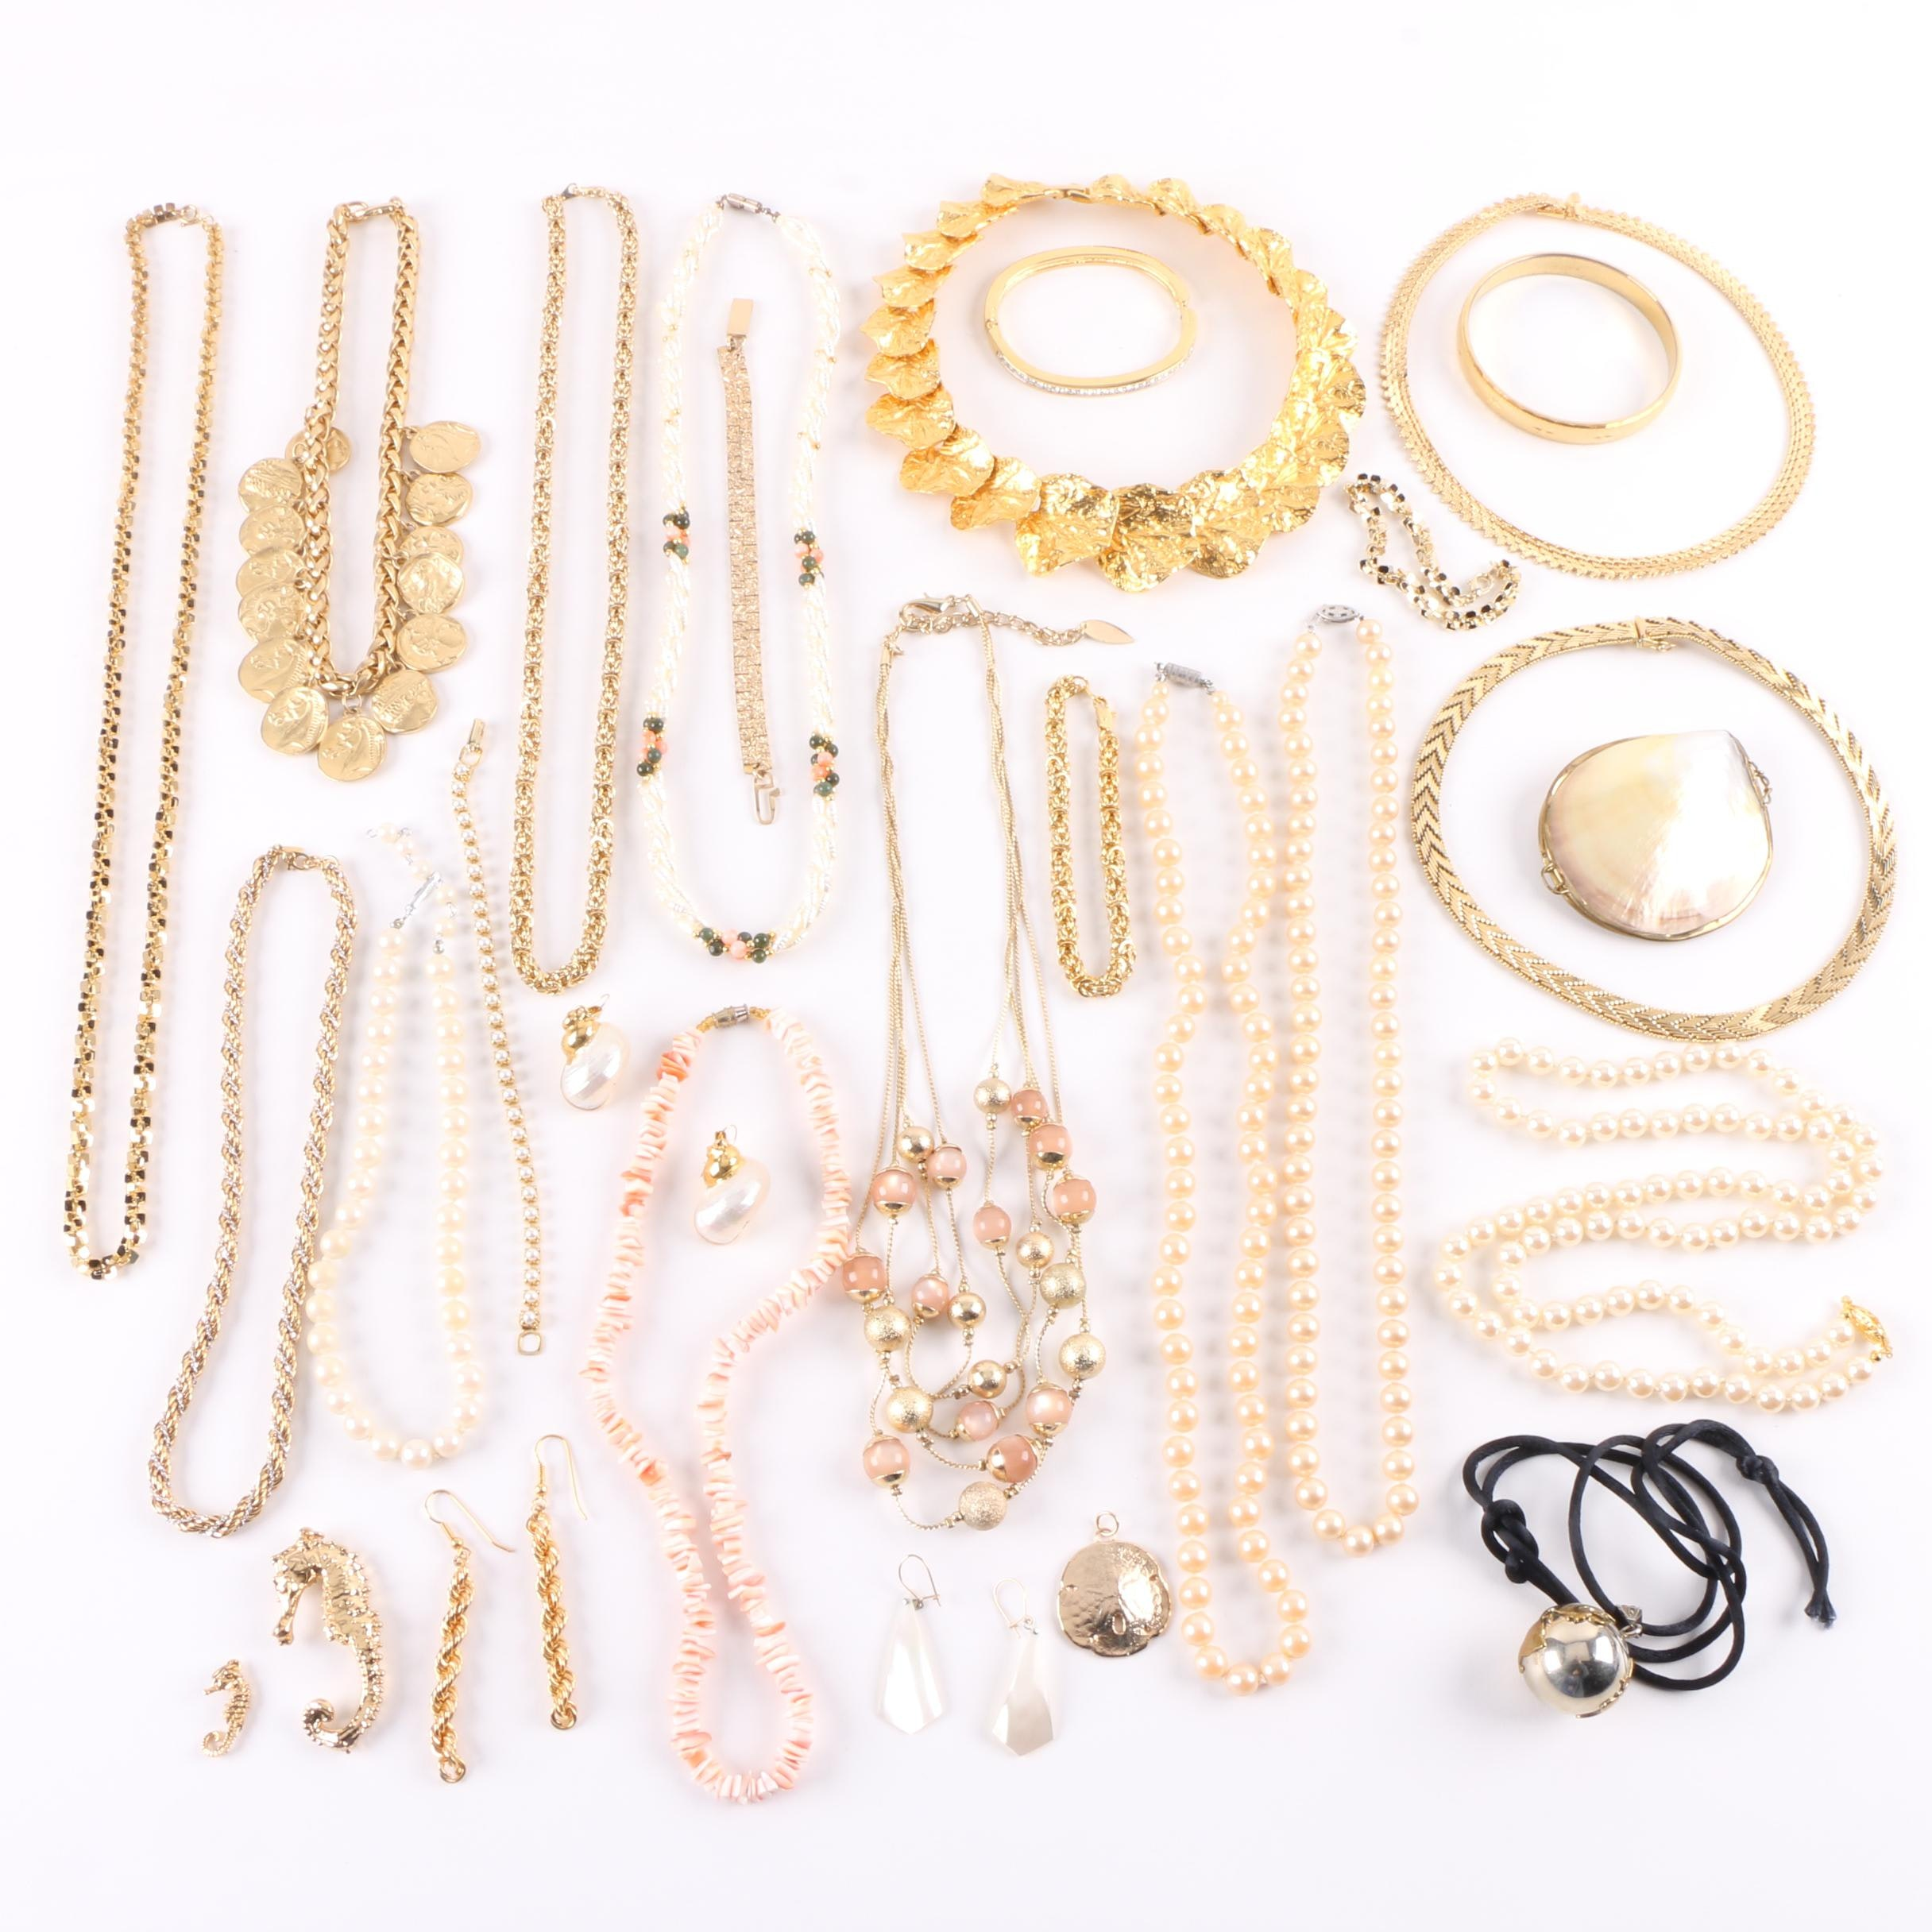 Assortment of Costume Jewelry Including Imitation Pearl and Gemstones